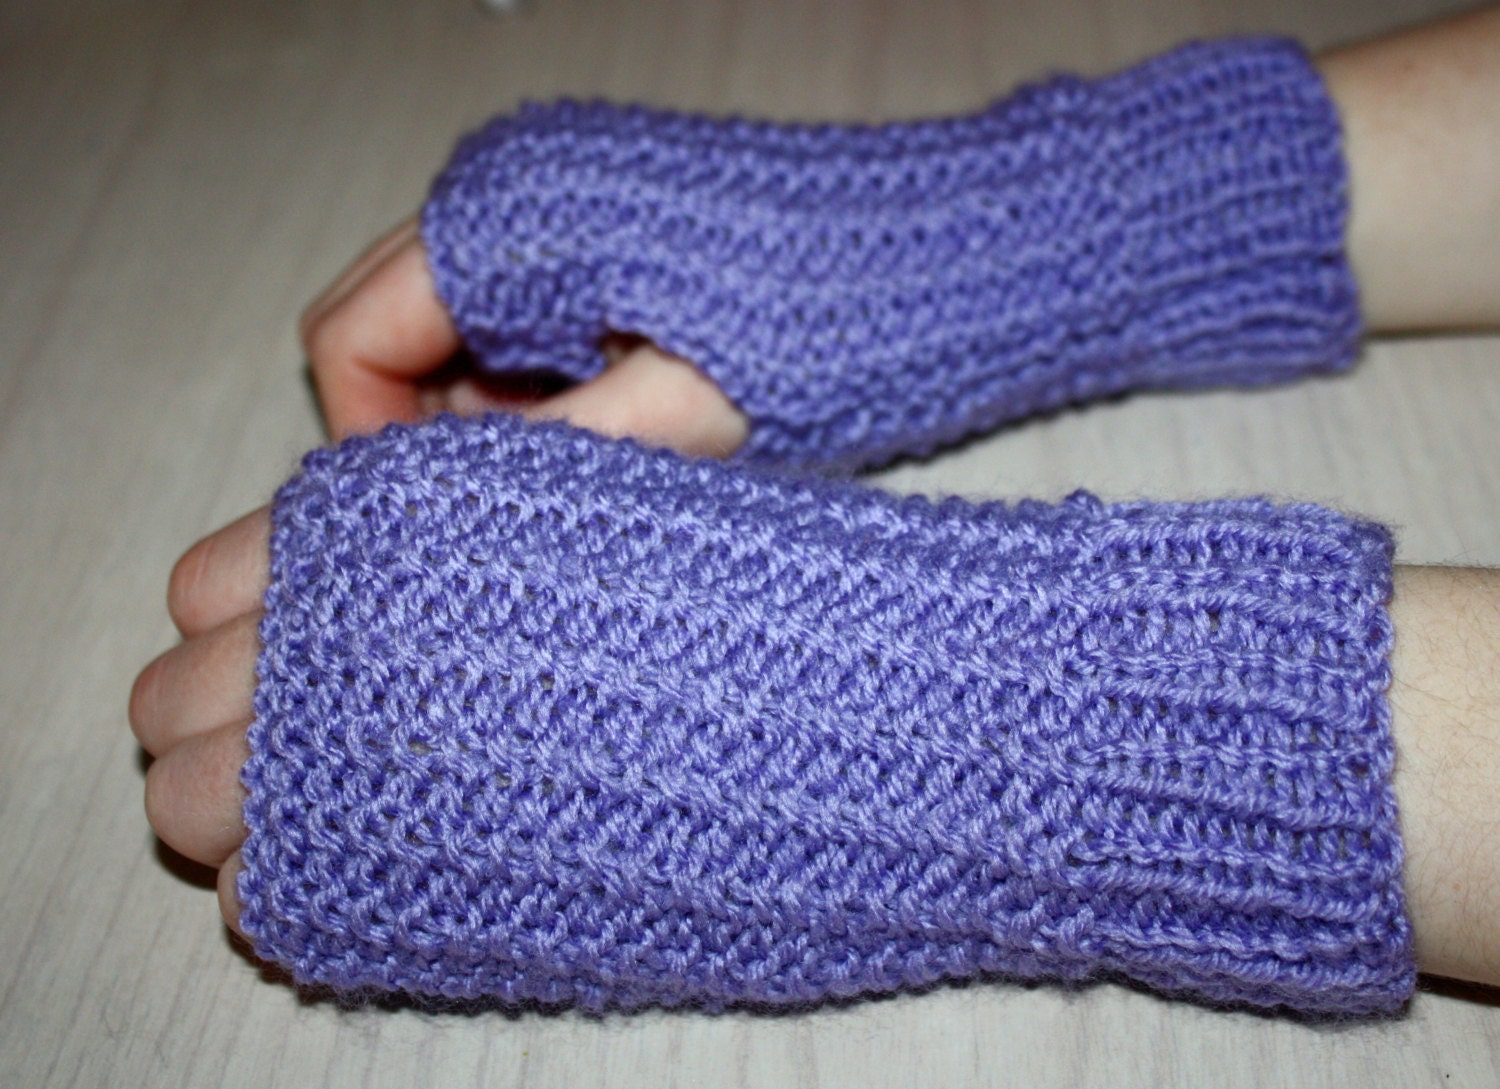 Instant download pdf knitting pattern easy beginner fingerless instant download pdf knitting pattern easy beginner fingerless gloves on straight needles ladies wrist warmers mittens knit pattern bankloansurffo Image collections